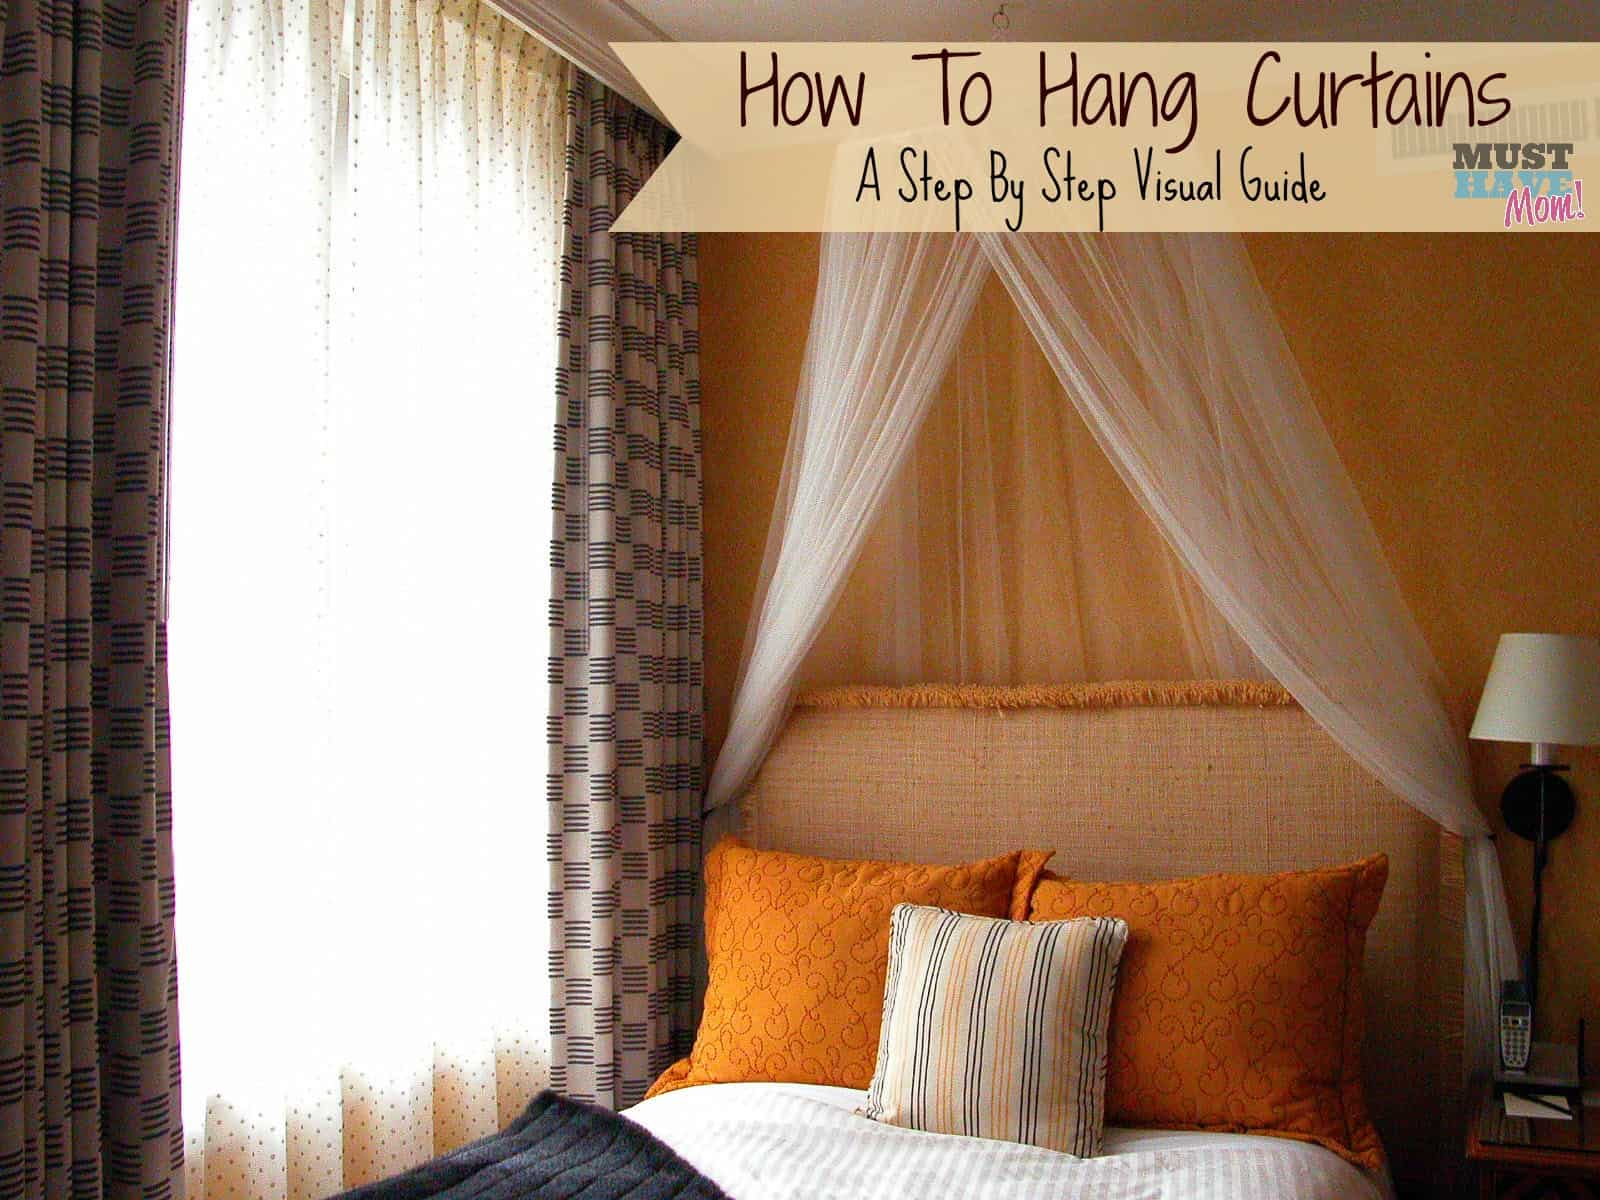 How To Hang Curtains: A Step By Step Visual Guide